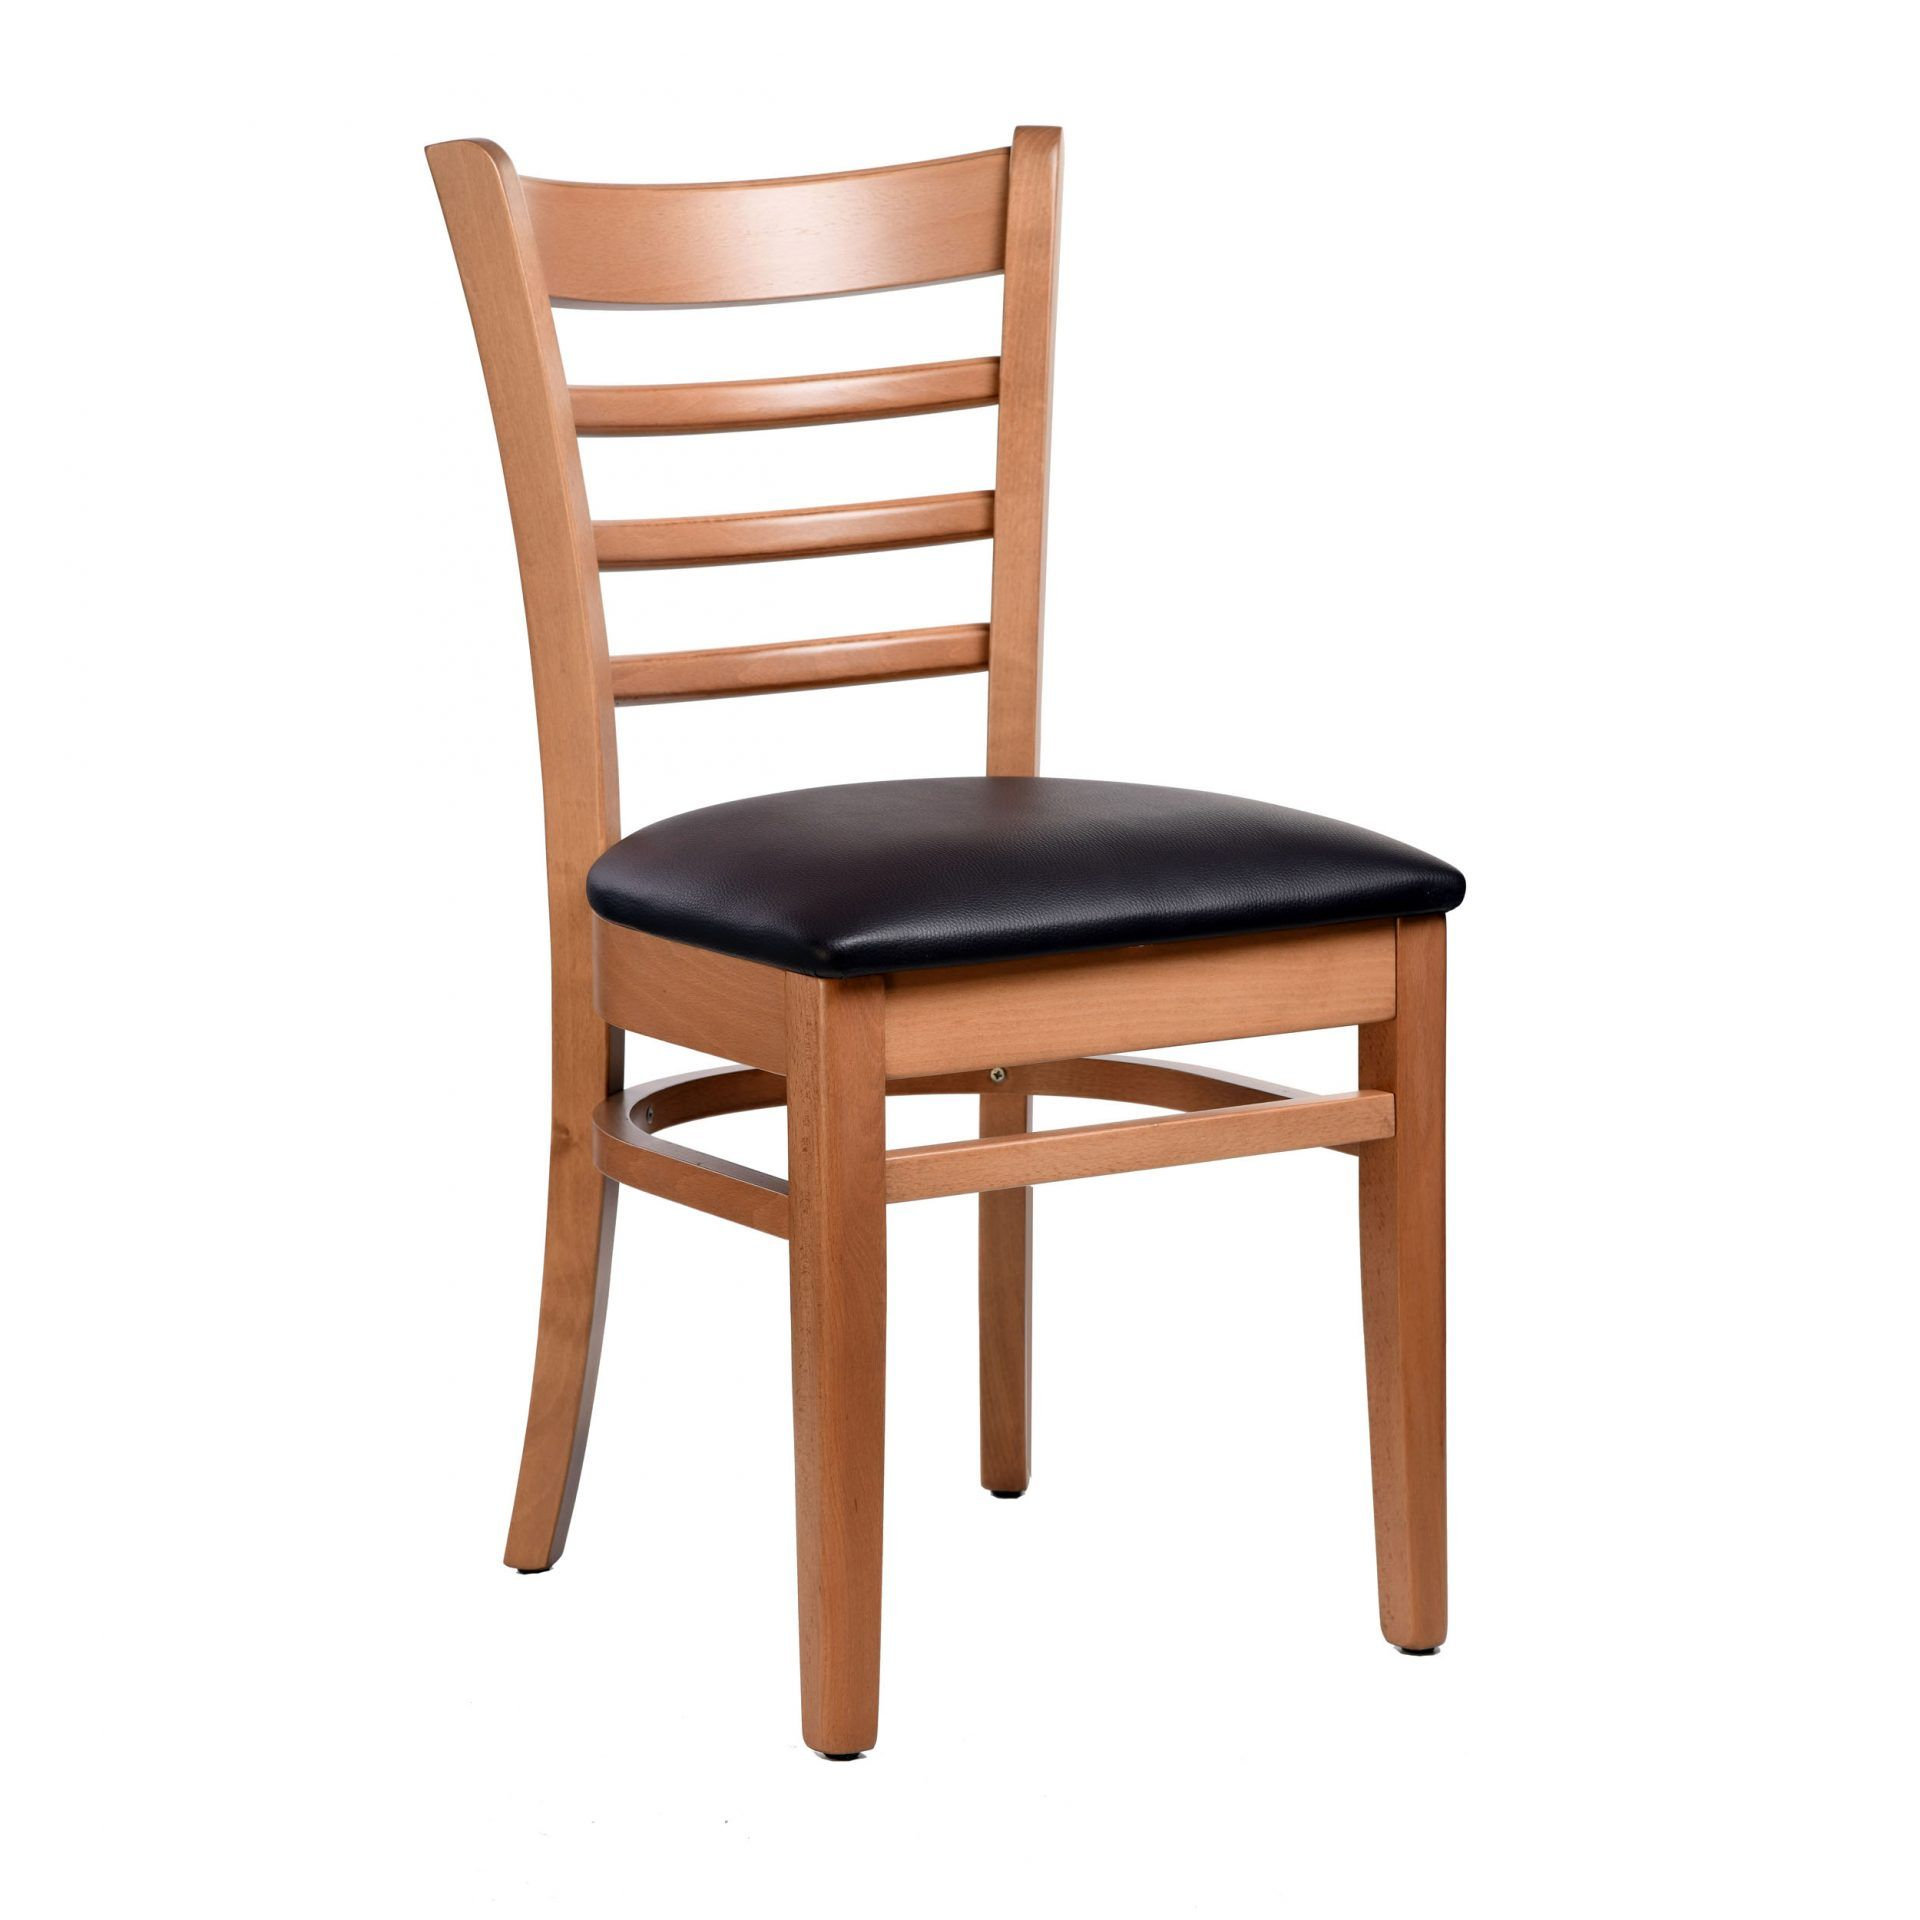 Florence Chair - Natural - Vinyl Seat (Black) - Made in Europe